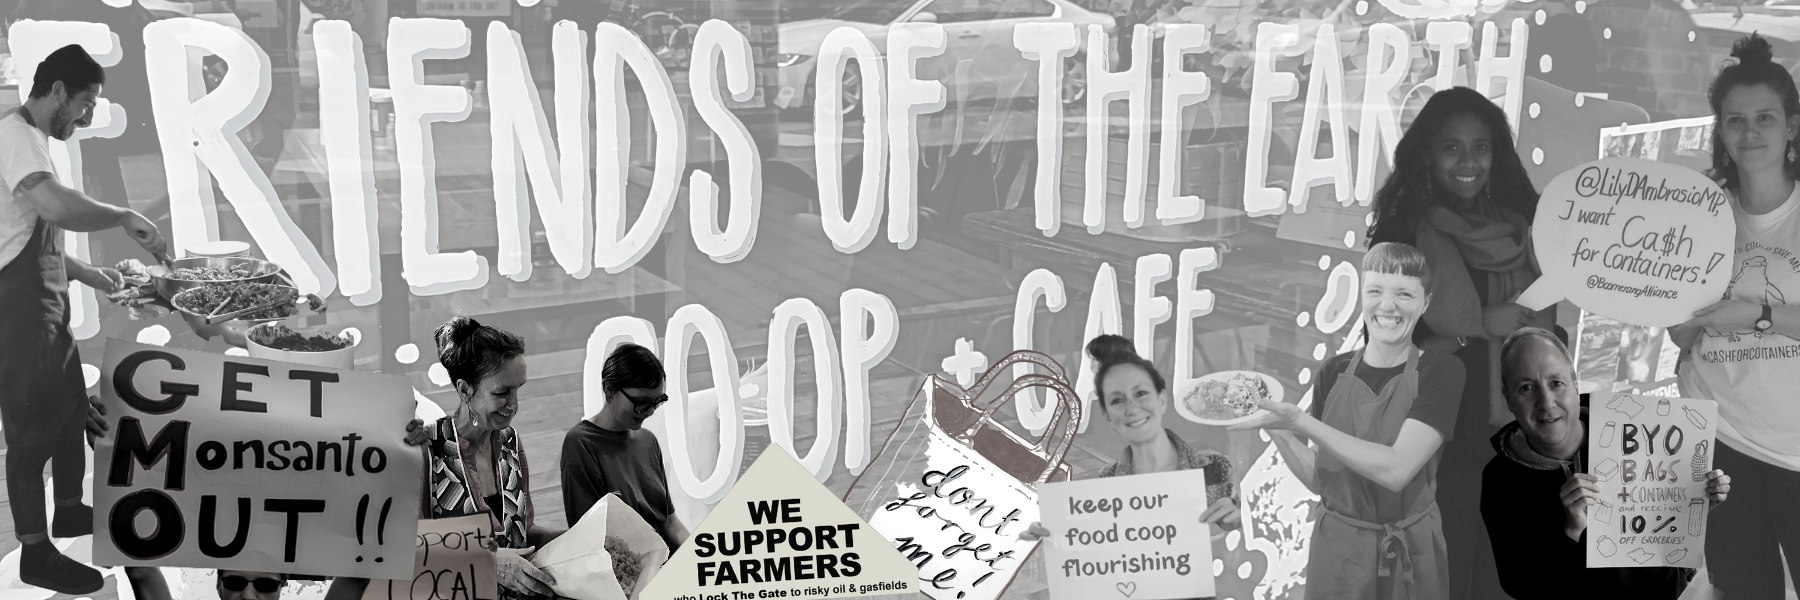 Click here for the Friends of the Earth Food Co-op and Cafe website, where you can find out more about our range of bulk foods, groceries and fruit and veg, click and collect service and in-store menu options.